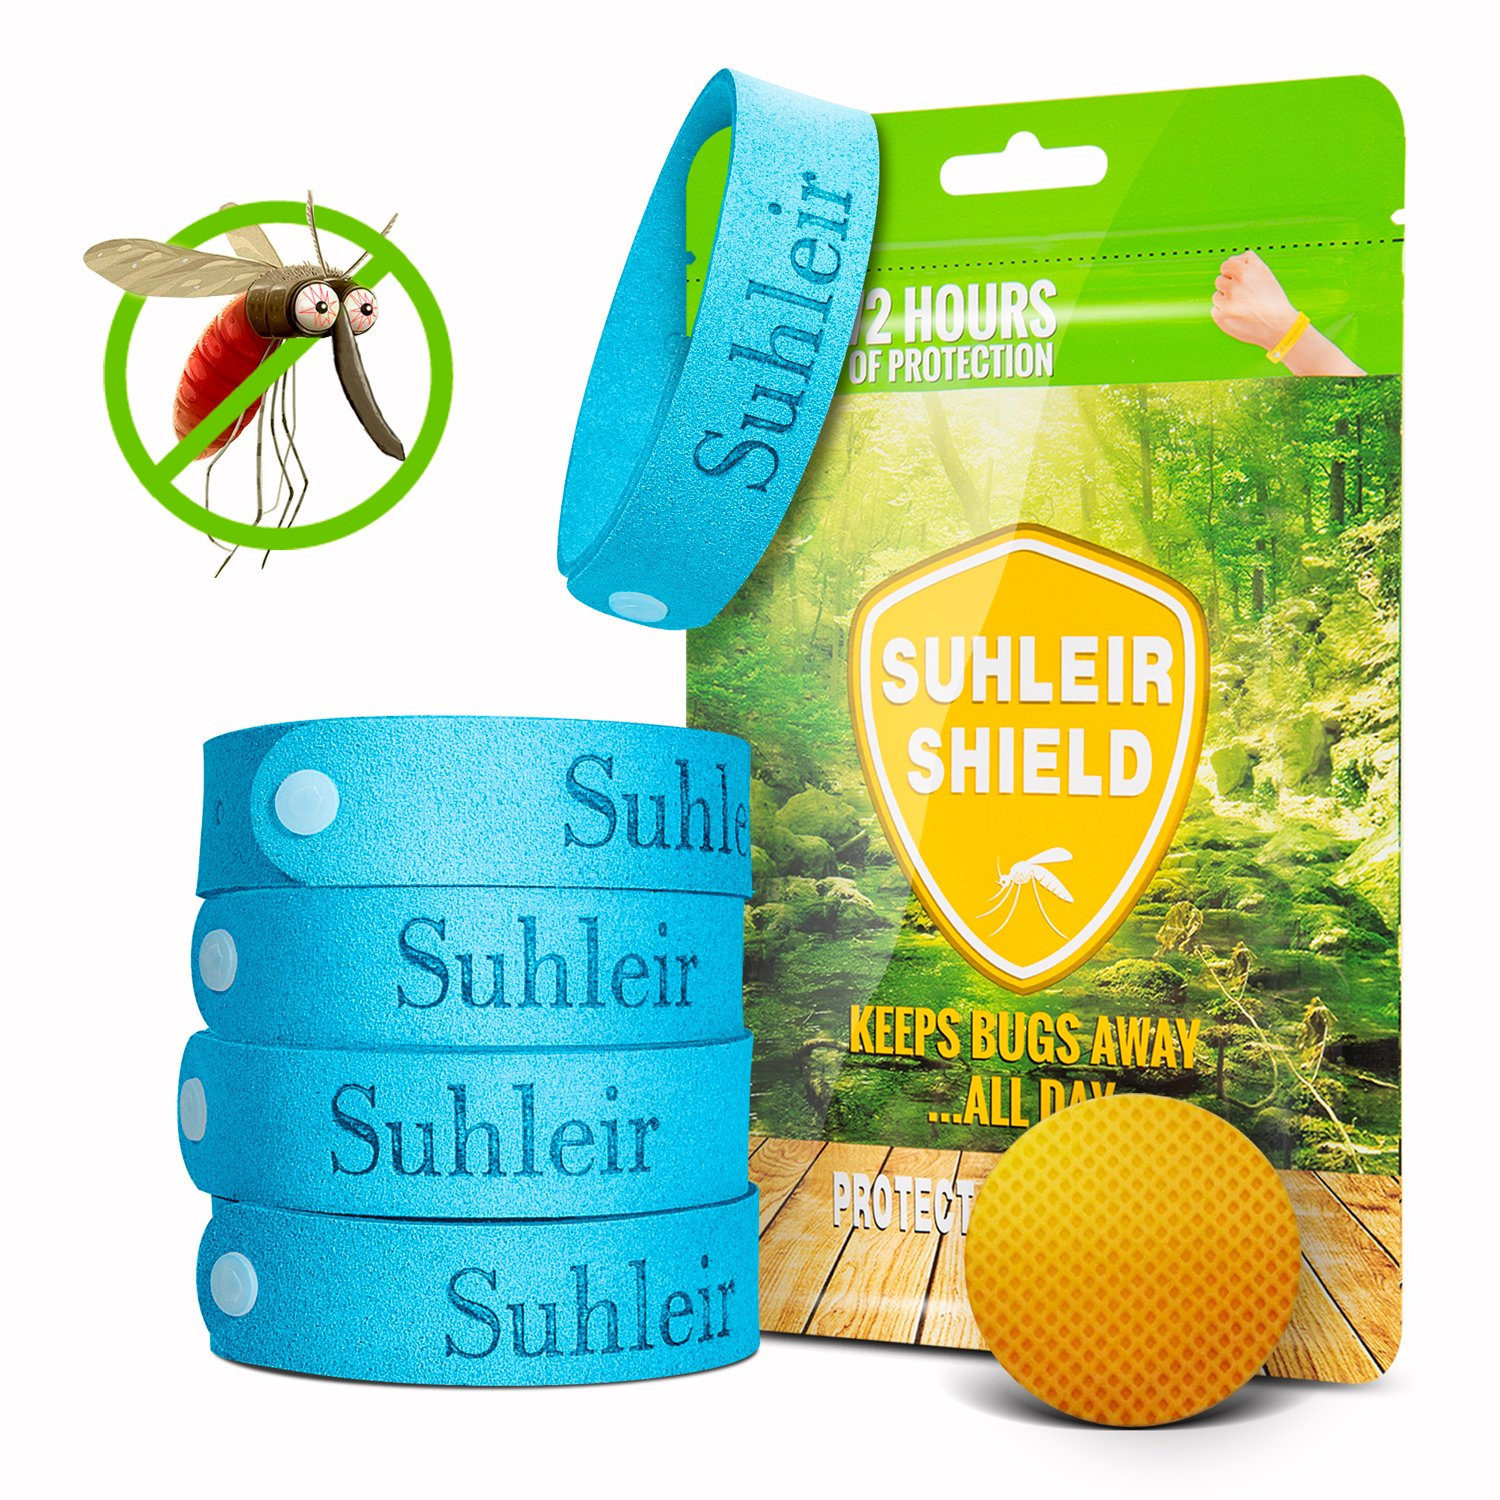 Betterlive Mosquito Repellent Bracelet 5 and 6 mosquito patch for Adults and Children Deet Free, repellent bracelets Mosquito Bracelet Anti Fly, Insects etc Suhleir